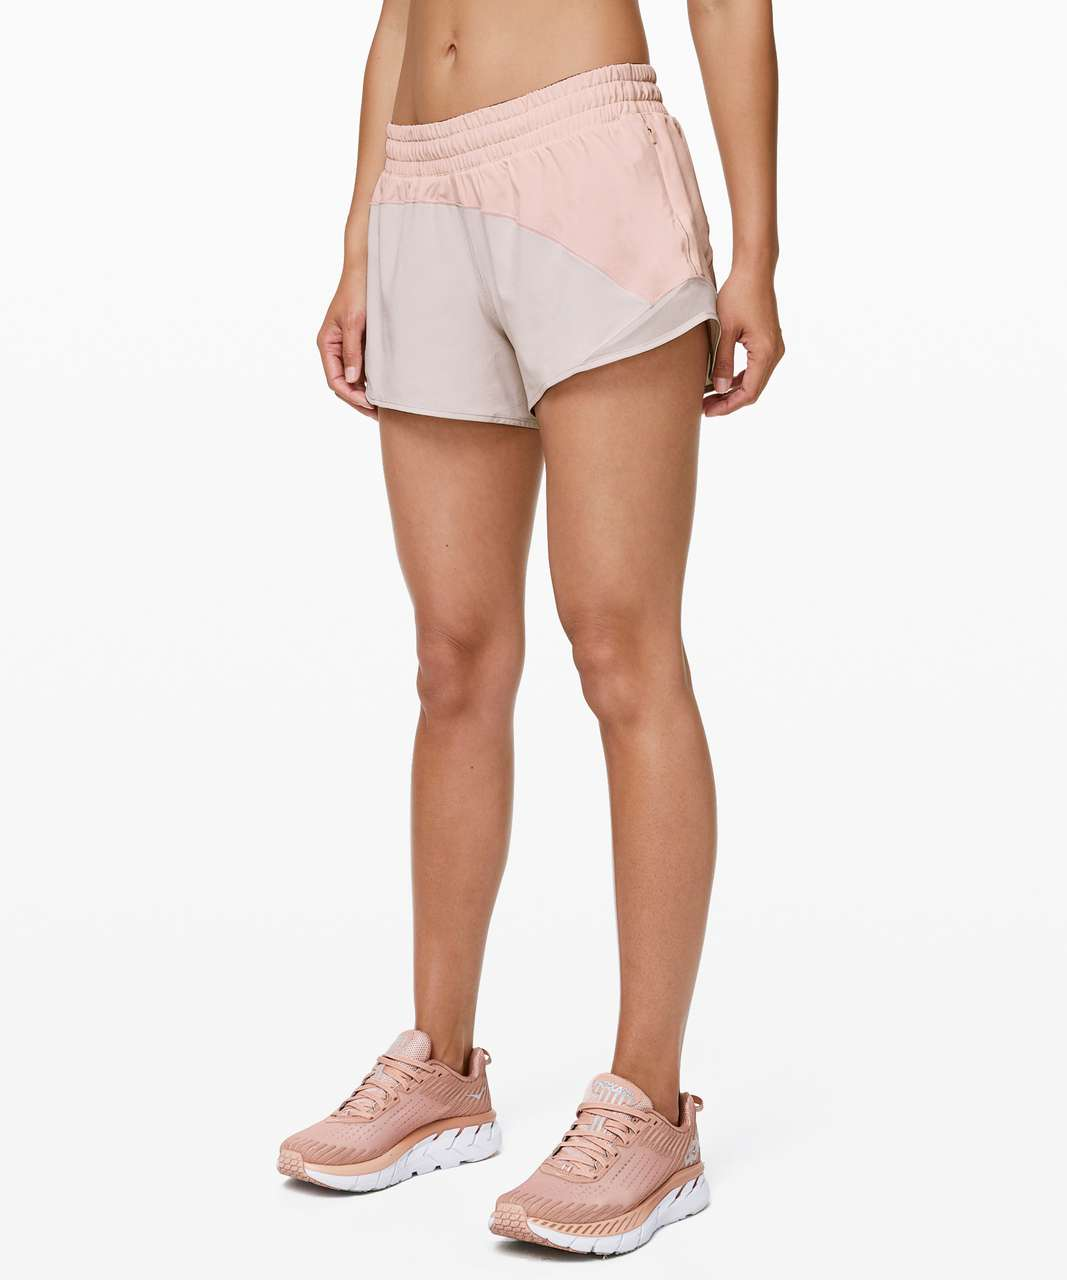 Lululemon Hotty Hot Short *Asym - Butter Pink / Light Chrome / Light Chrome